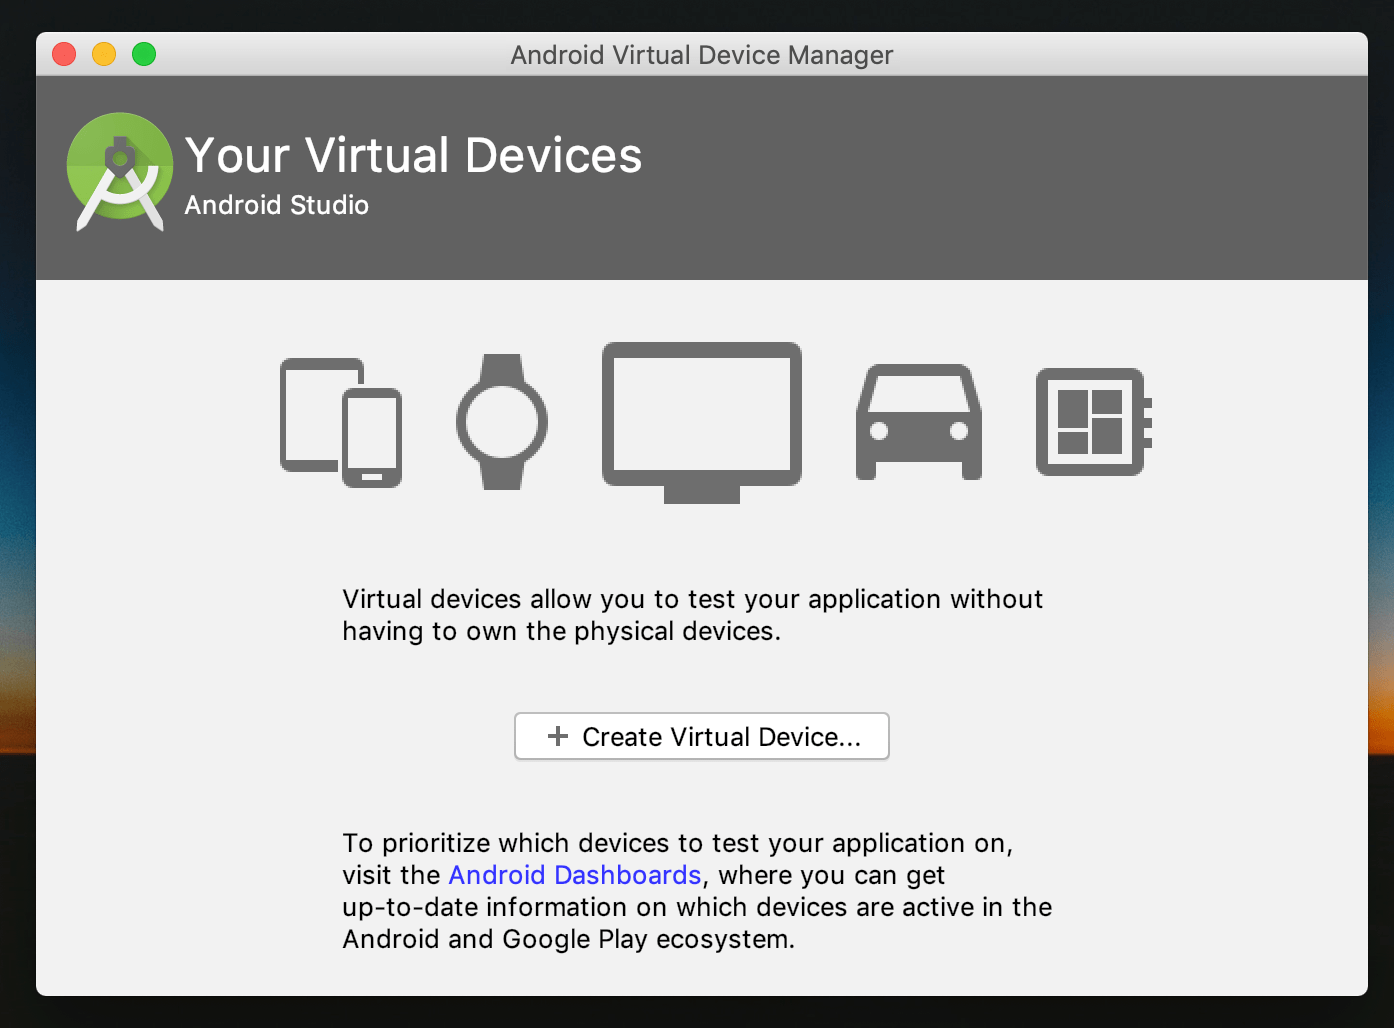 Android Studio: Virtual Device Manager